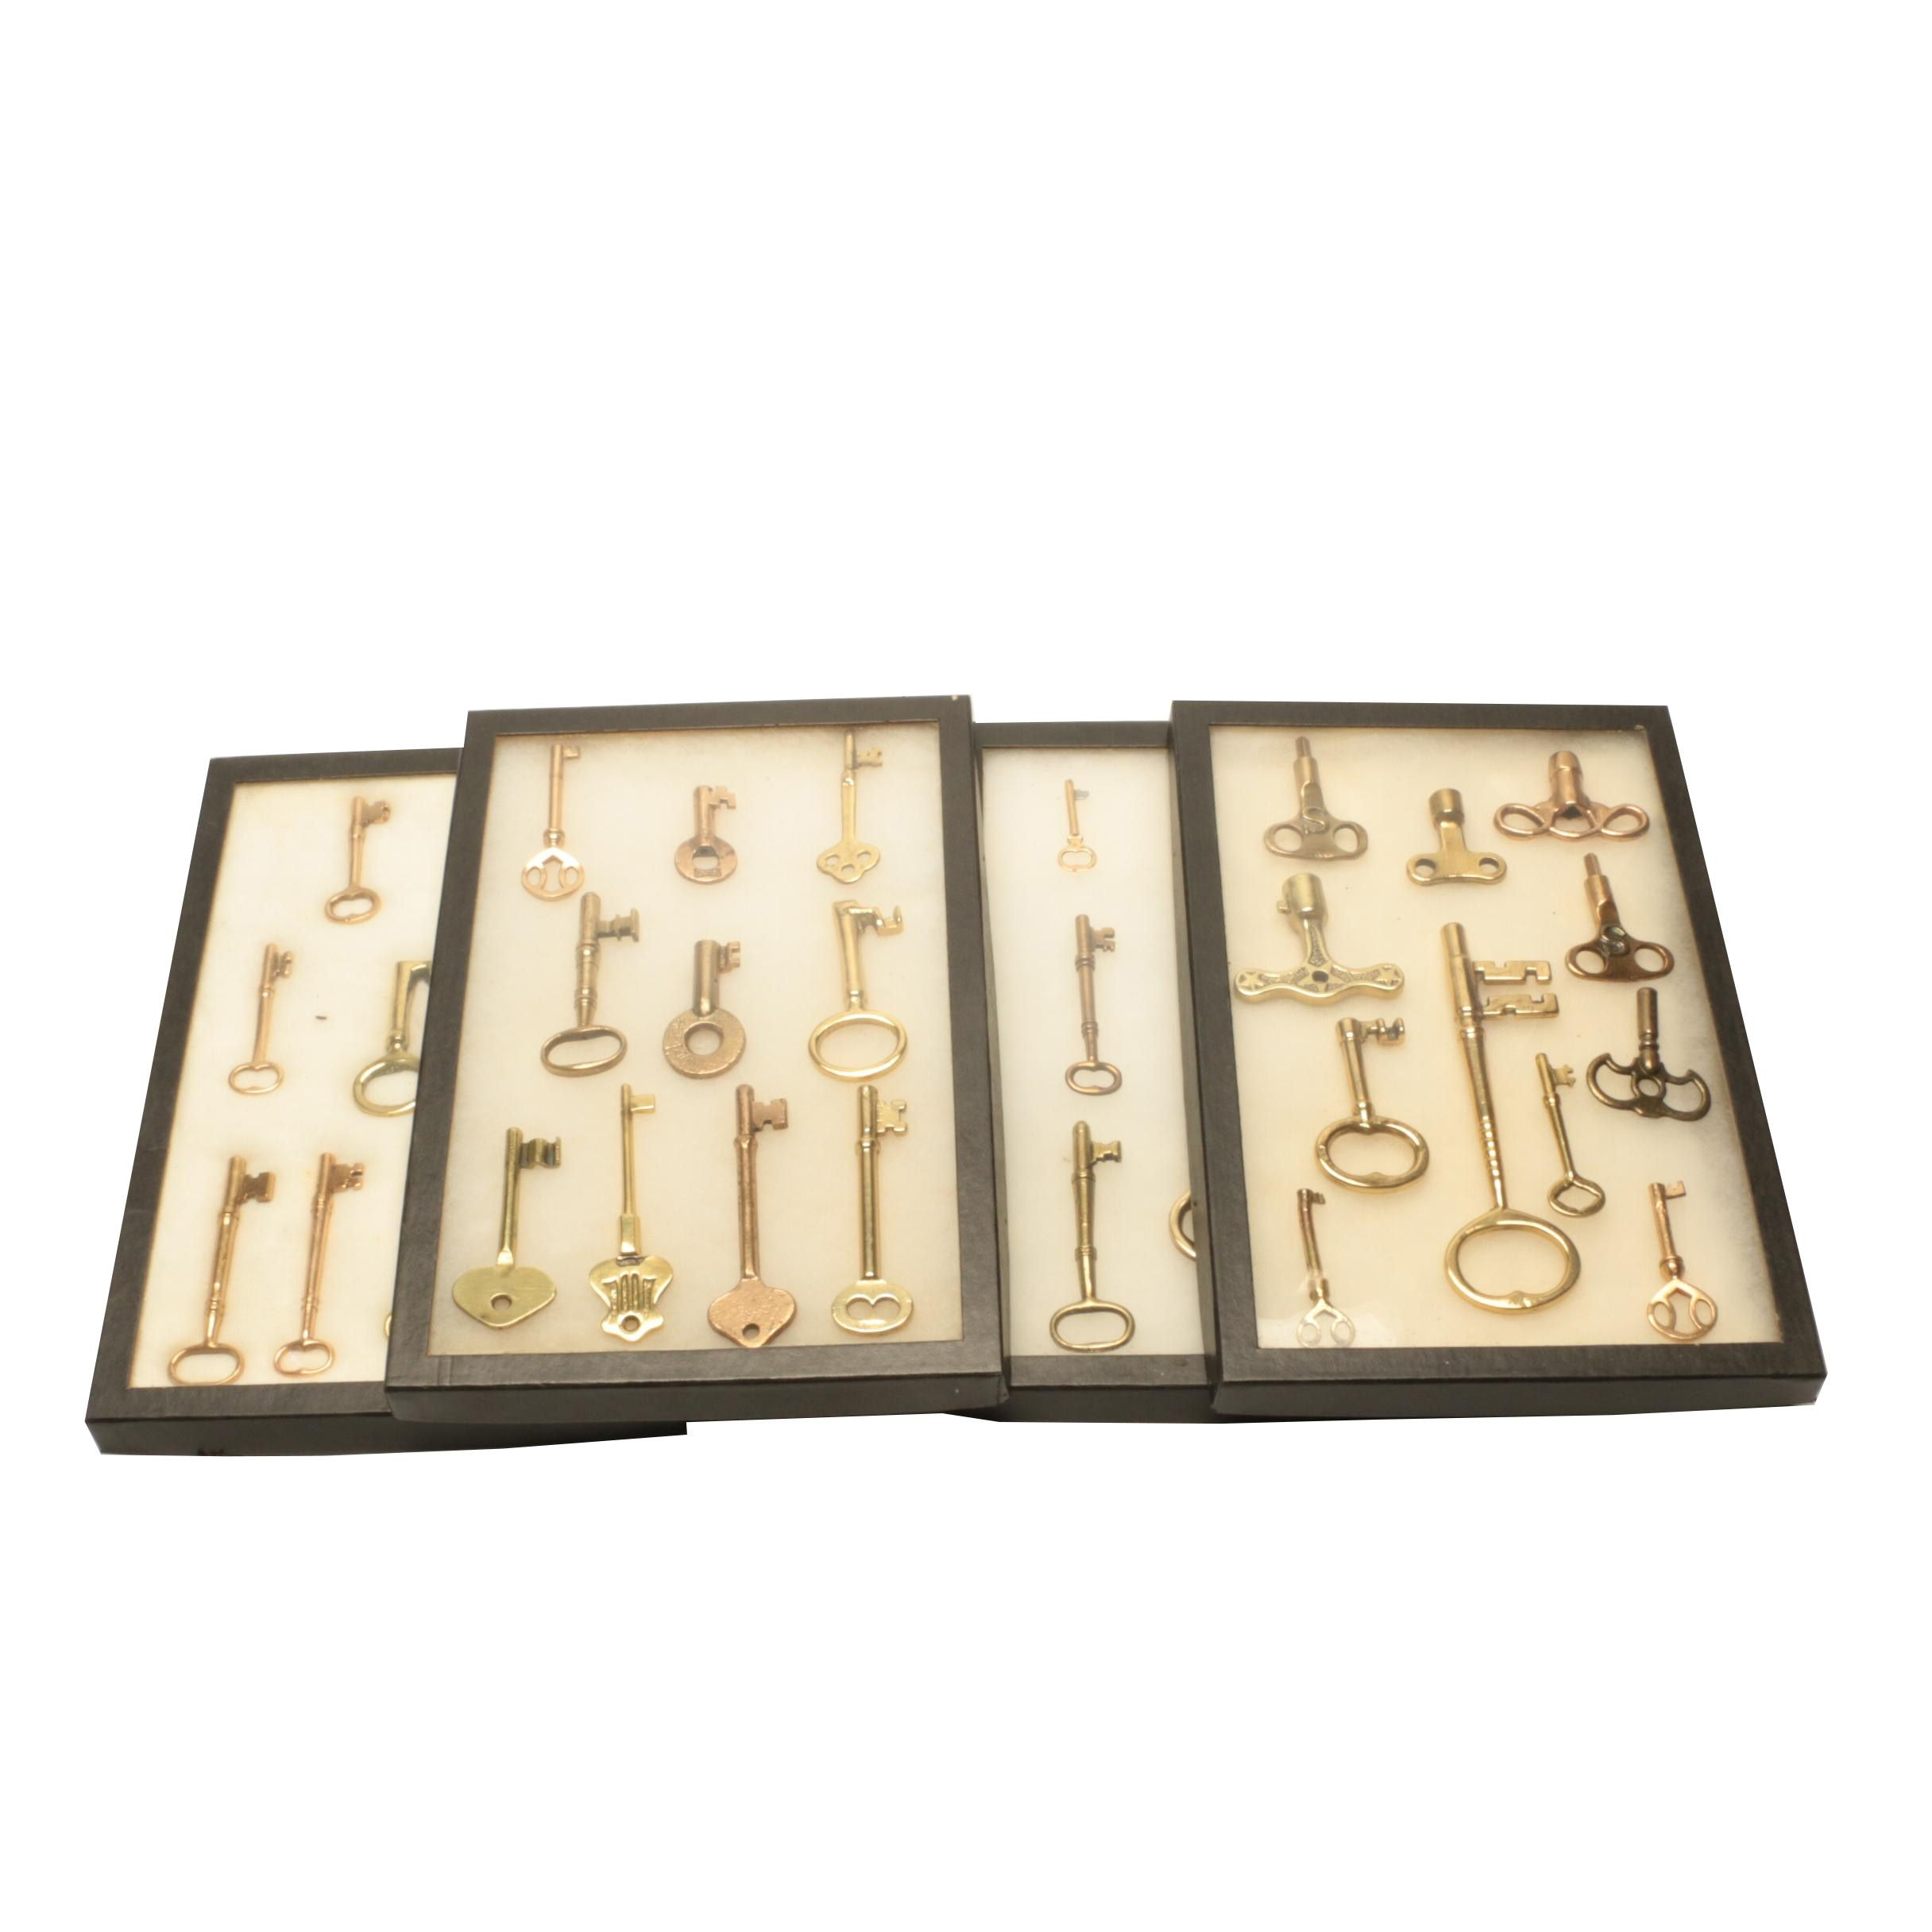 Collection of Skeleton and Clock Keys